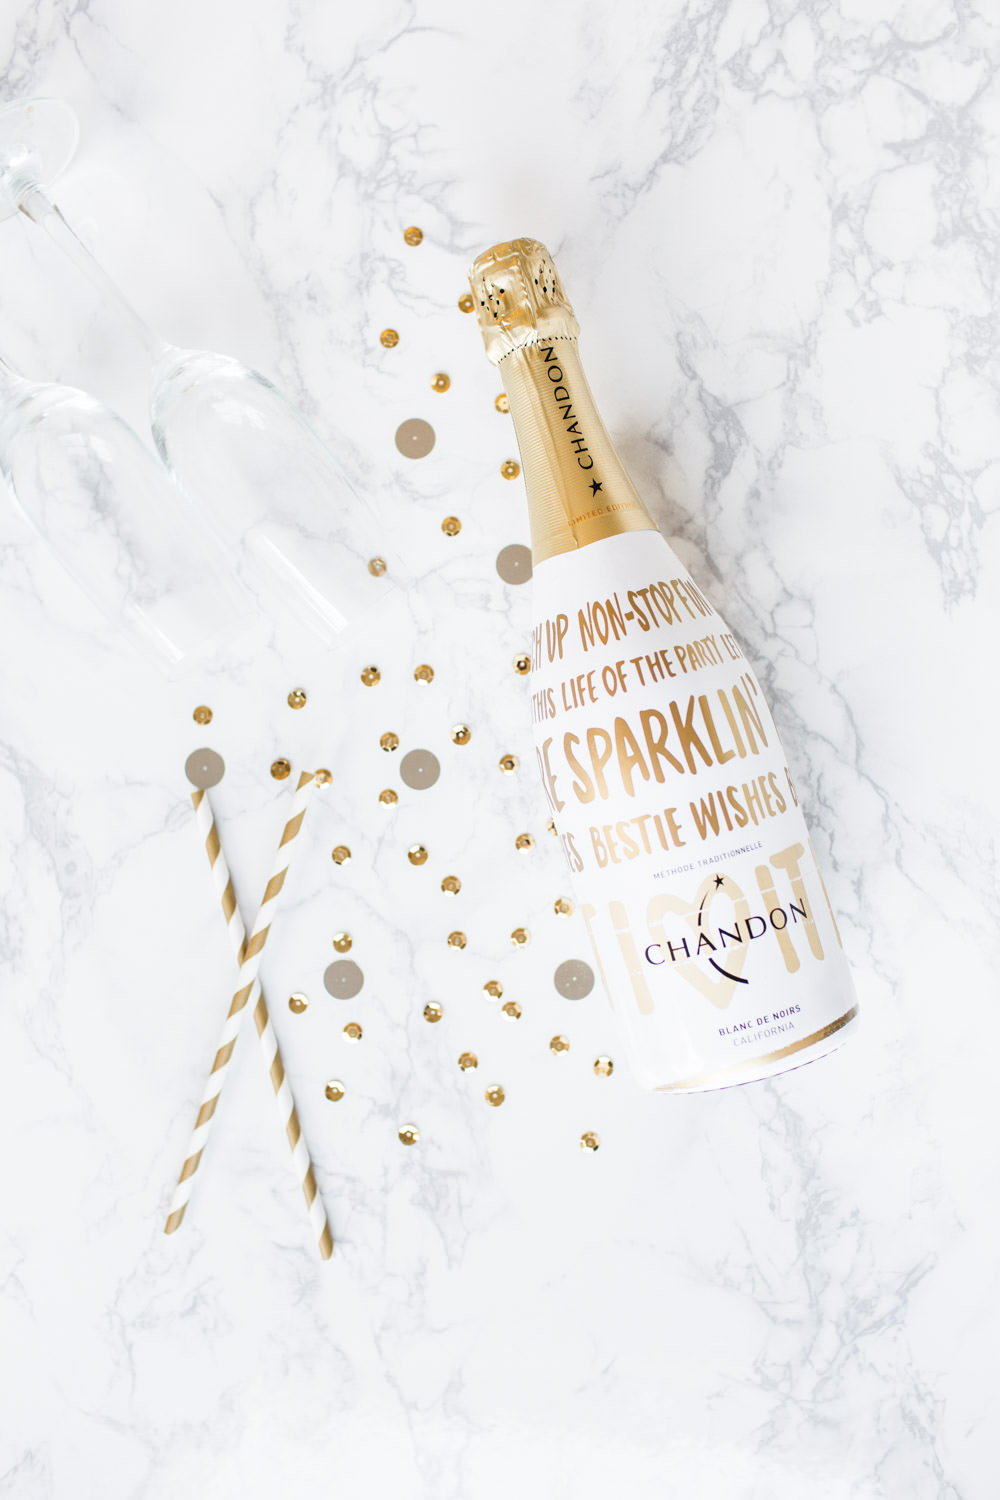 2017 2018 Best Bridesmaids Gifts, champagne by Chandon, image by Cavin Elizabeth